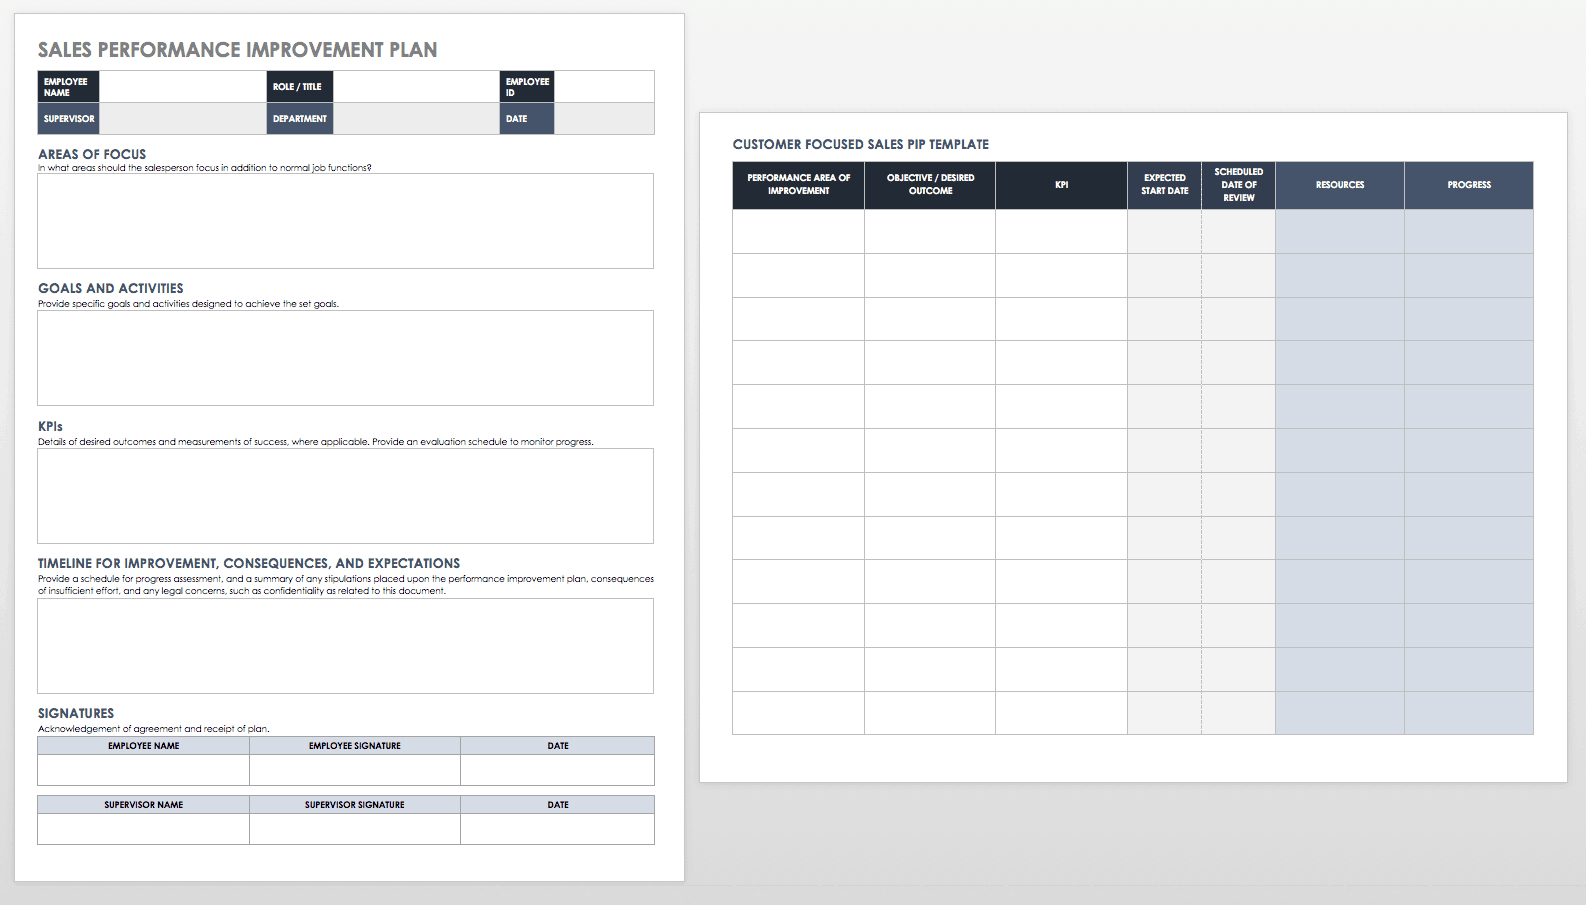 Performance Improvement Plan Templates | Smartsheet pertaining to Improvement Report Template